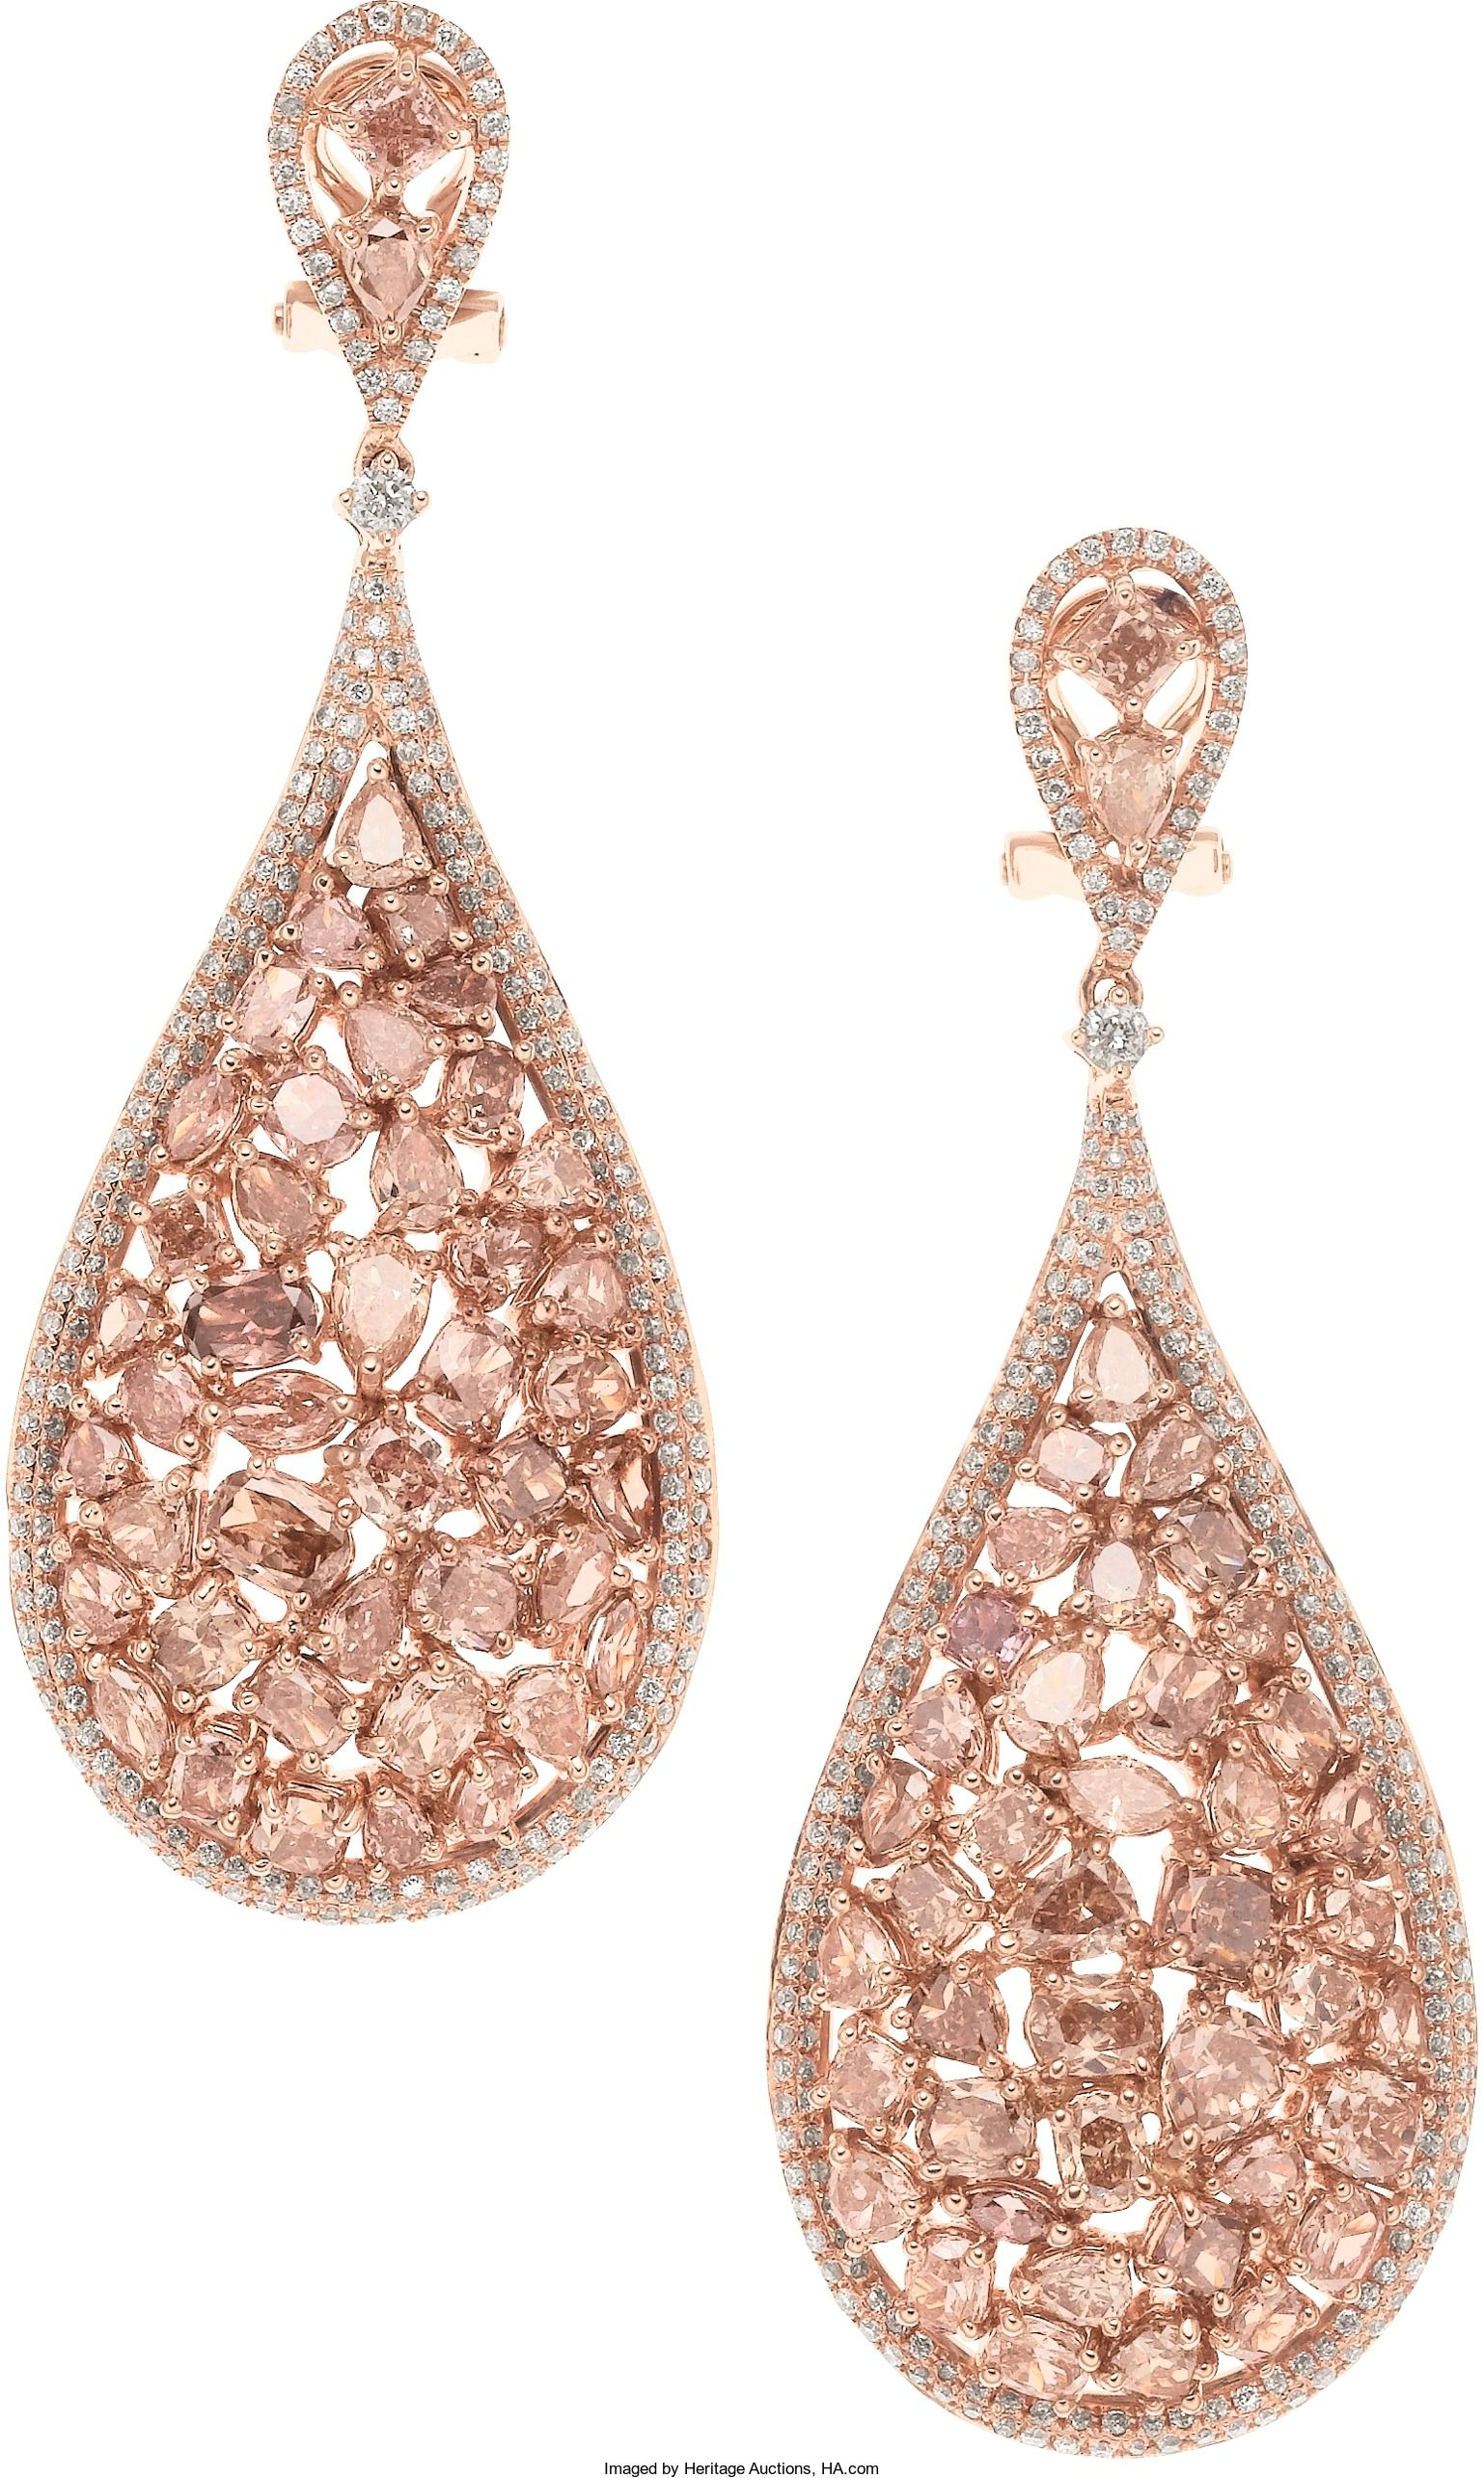 Champagne champagne pinterest champagne fancy and diamond pink diamond and rose gold earrings the earrings feature full cut pear marquise oval and cushion shaped diamonds arubaitofo Gallery